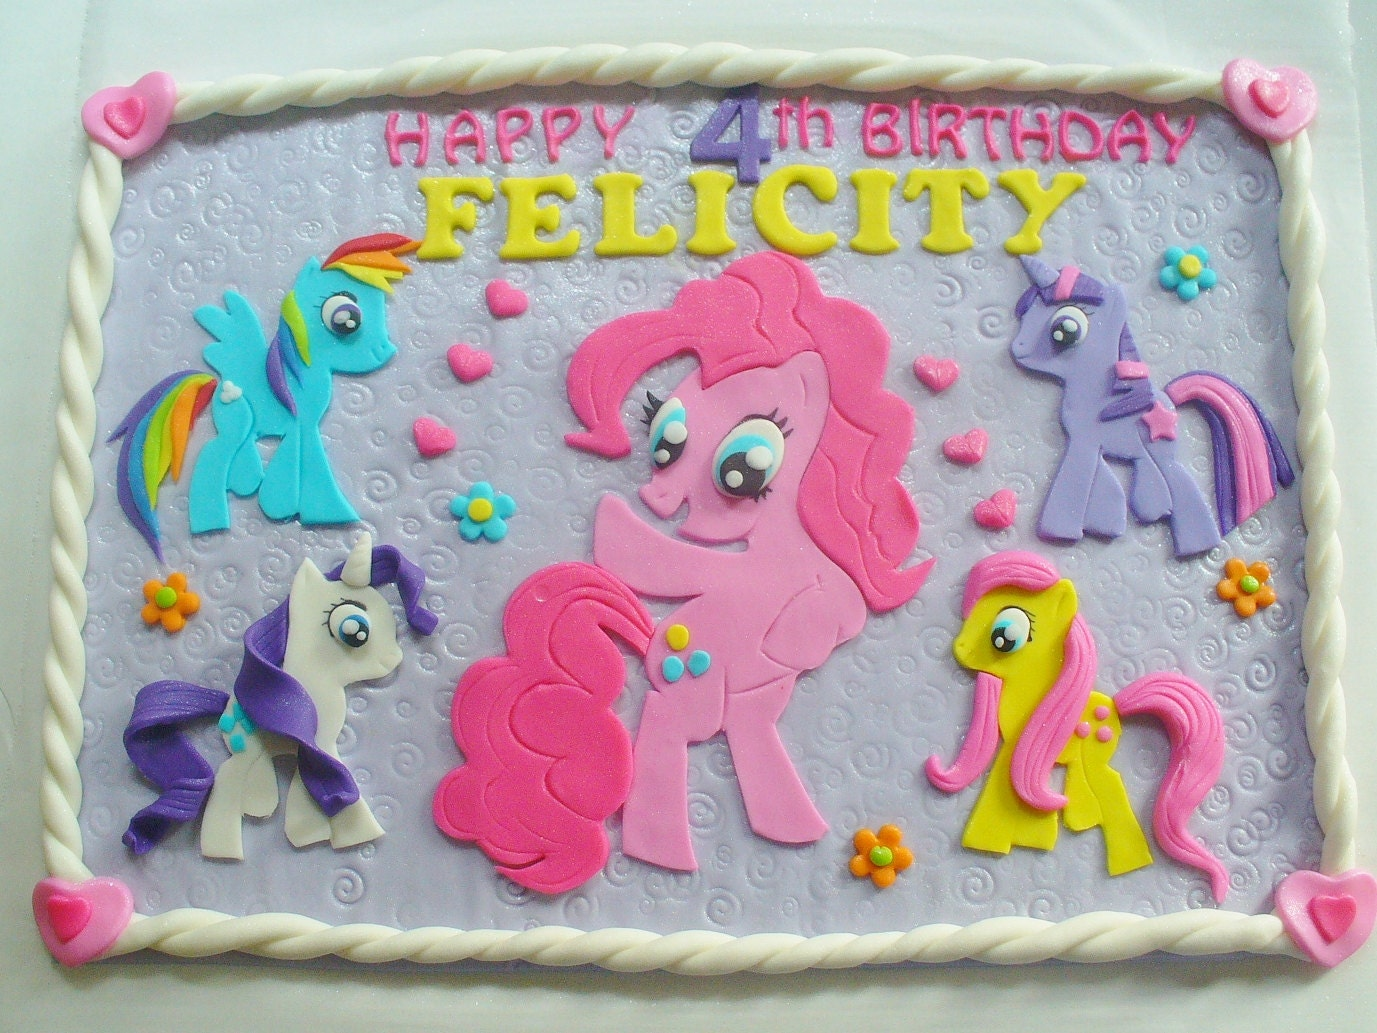 MY LITTLE PONY Edible Fondant Personalized Cake Topper Plaque